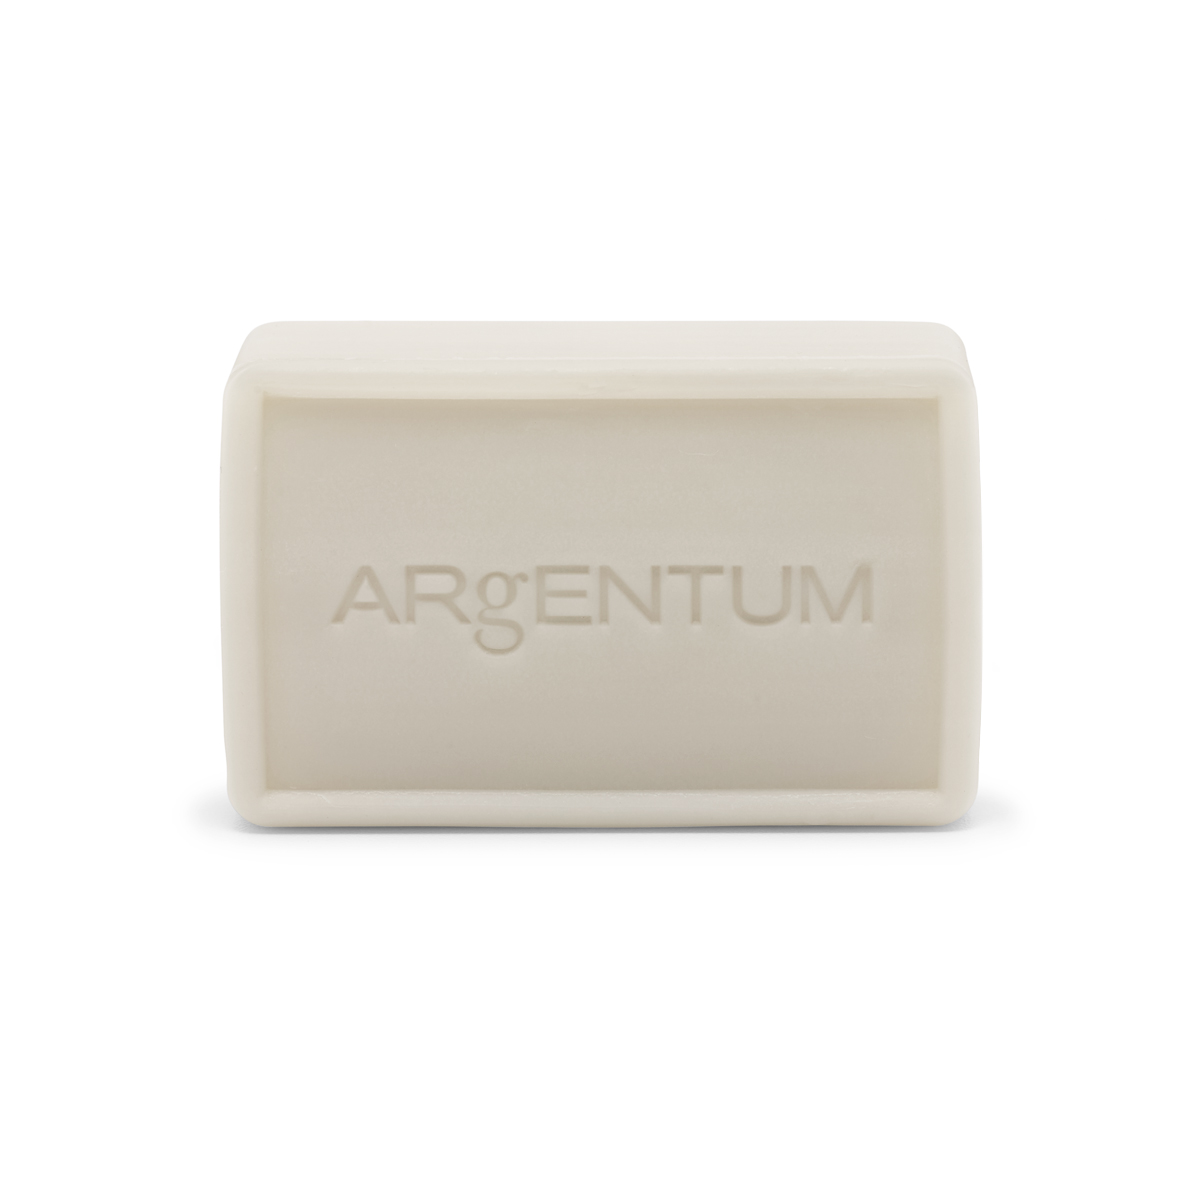 Argentum Apothecary product-le-savon-lune-rollover